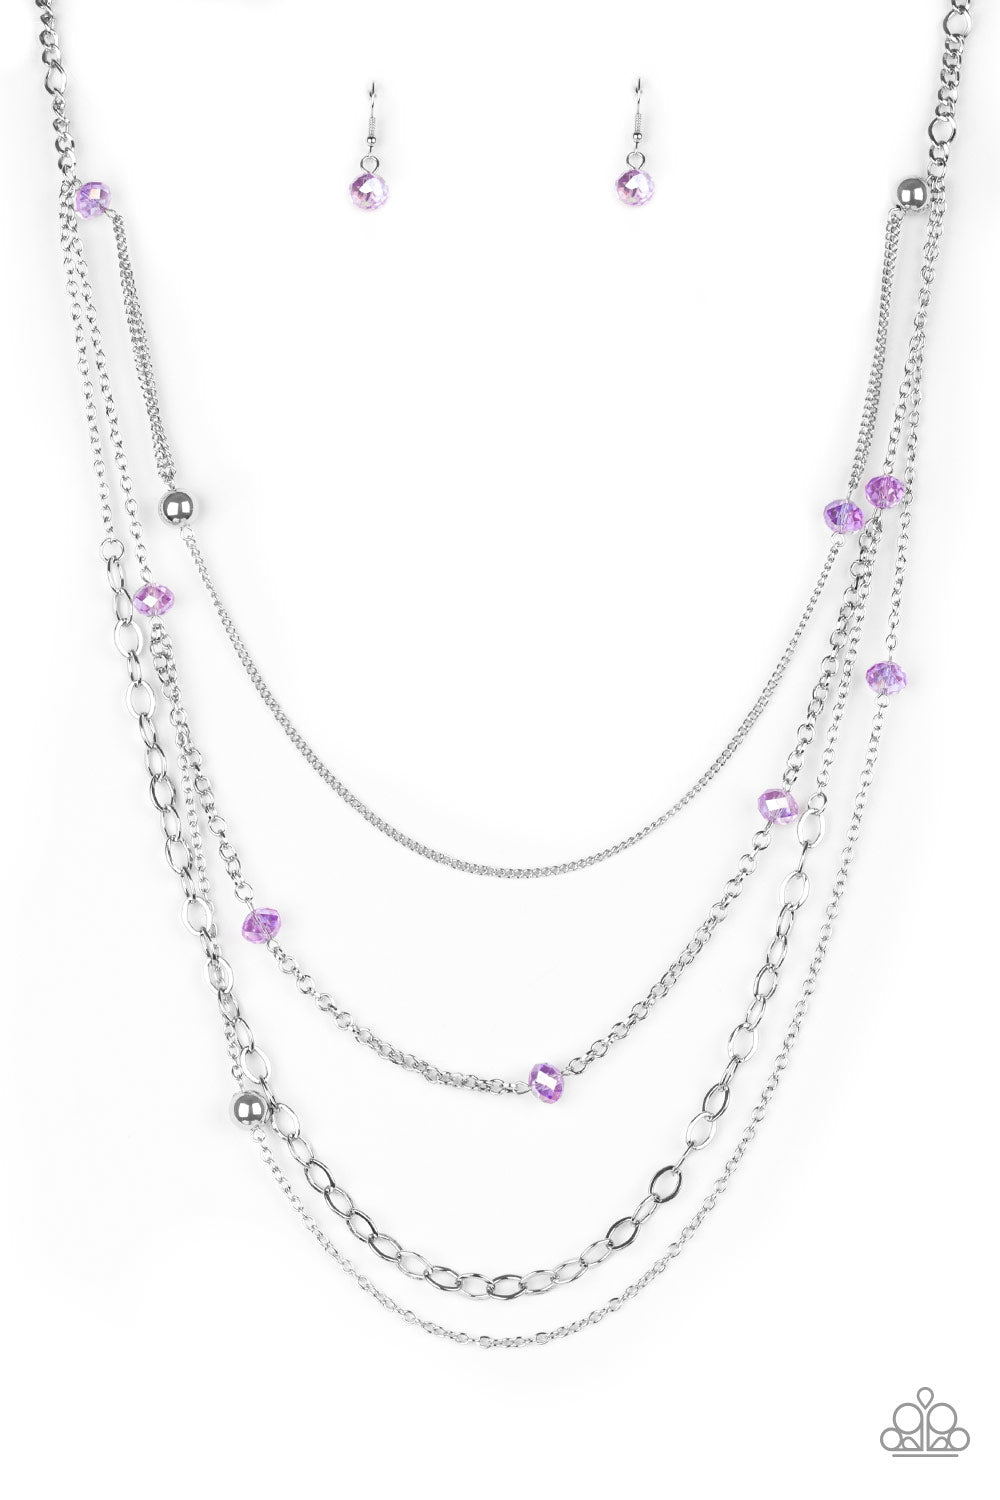 Paparazzi Accessories - Paparazzi Necklace -Glamour Grotto - Purple - Necklaces